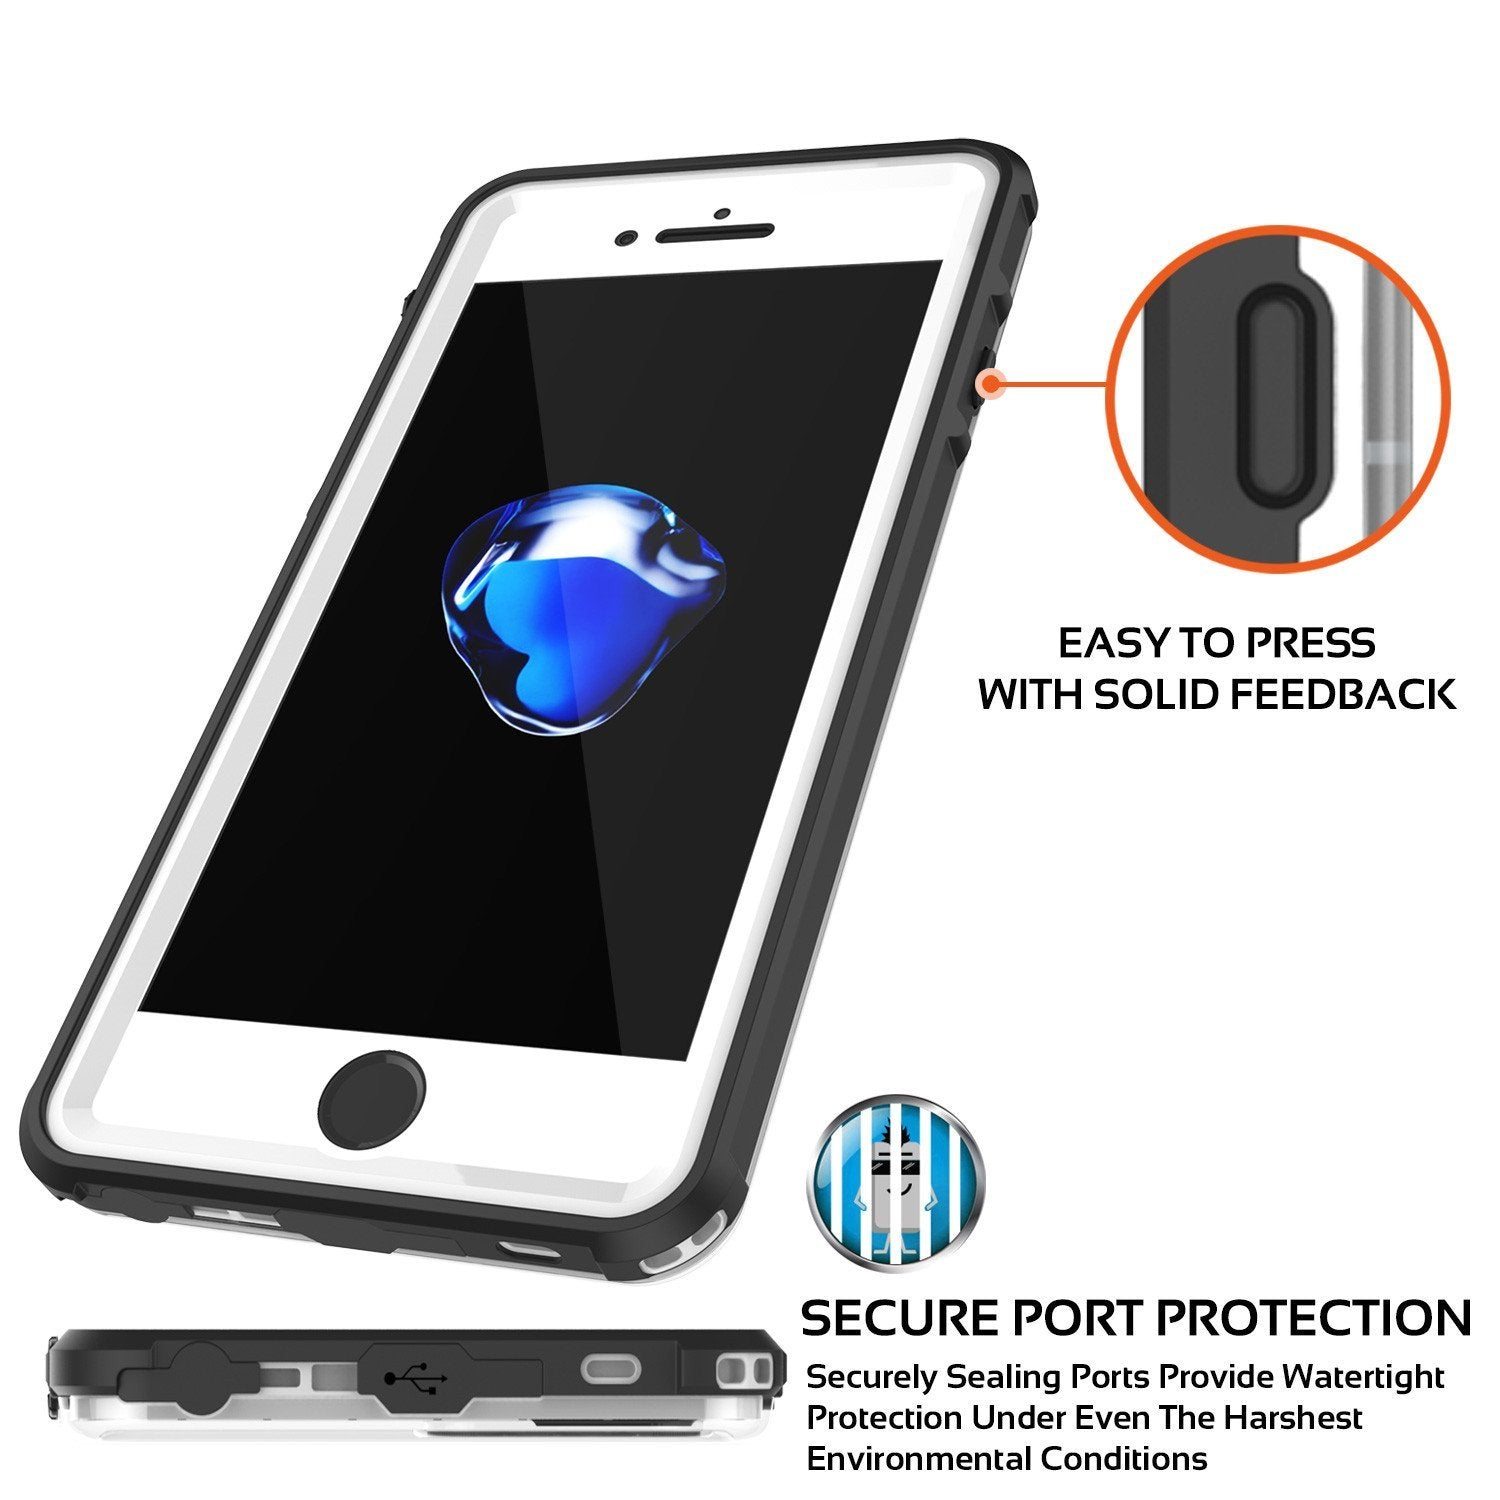 Apple iPhone 8 Waterproof Case, PUNKcase CRYSTAL White W/ Attached Screen Protector  | Warranty - PunkCase NZ